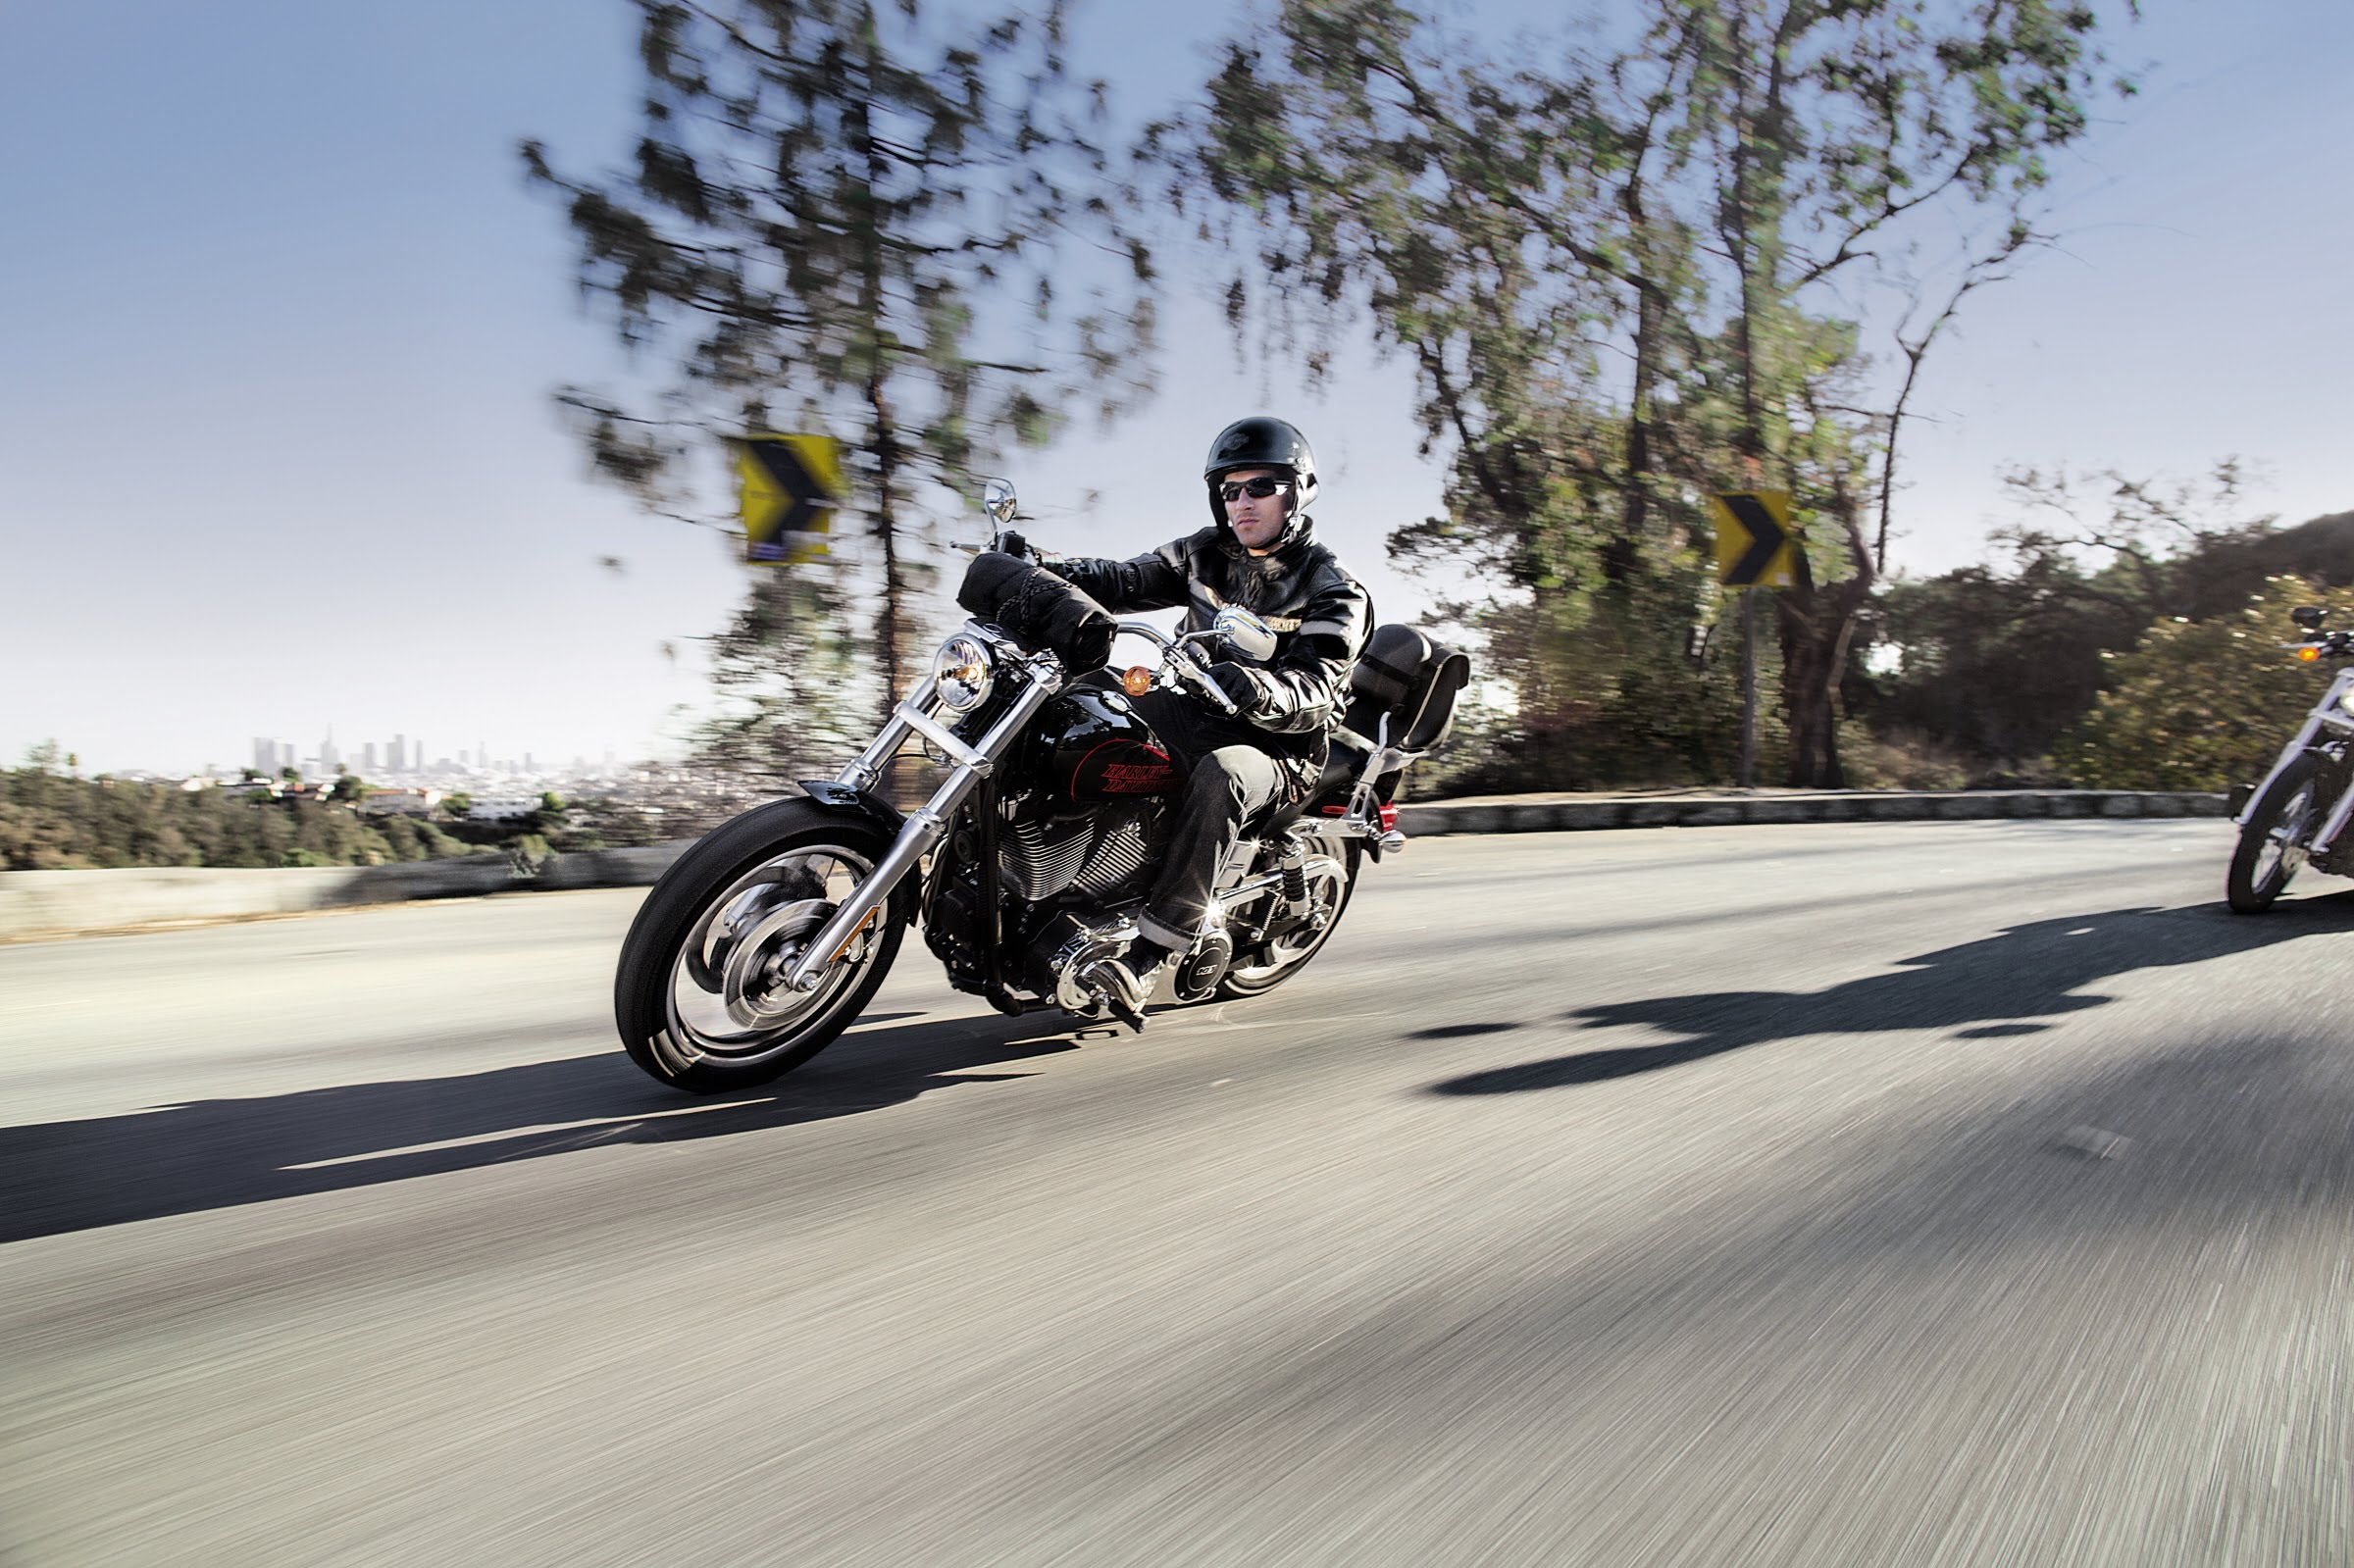 2014 Harley-Davidson Low Rider | Ride Hard or Stay Home